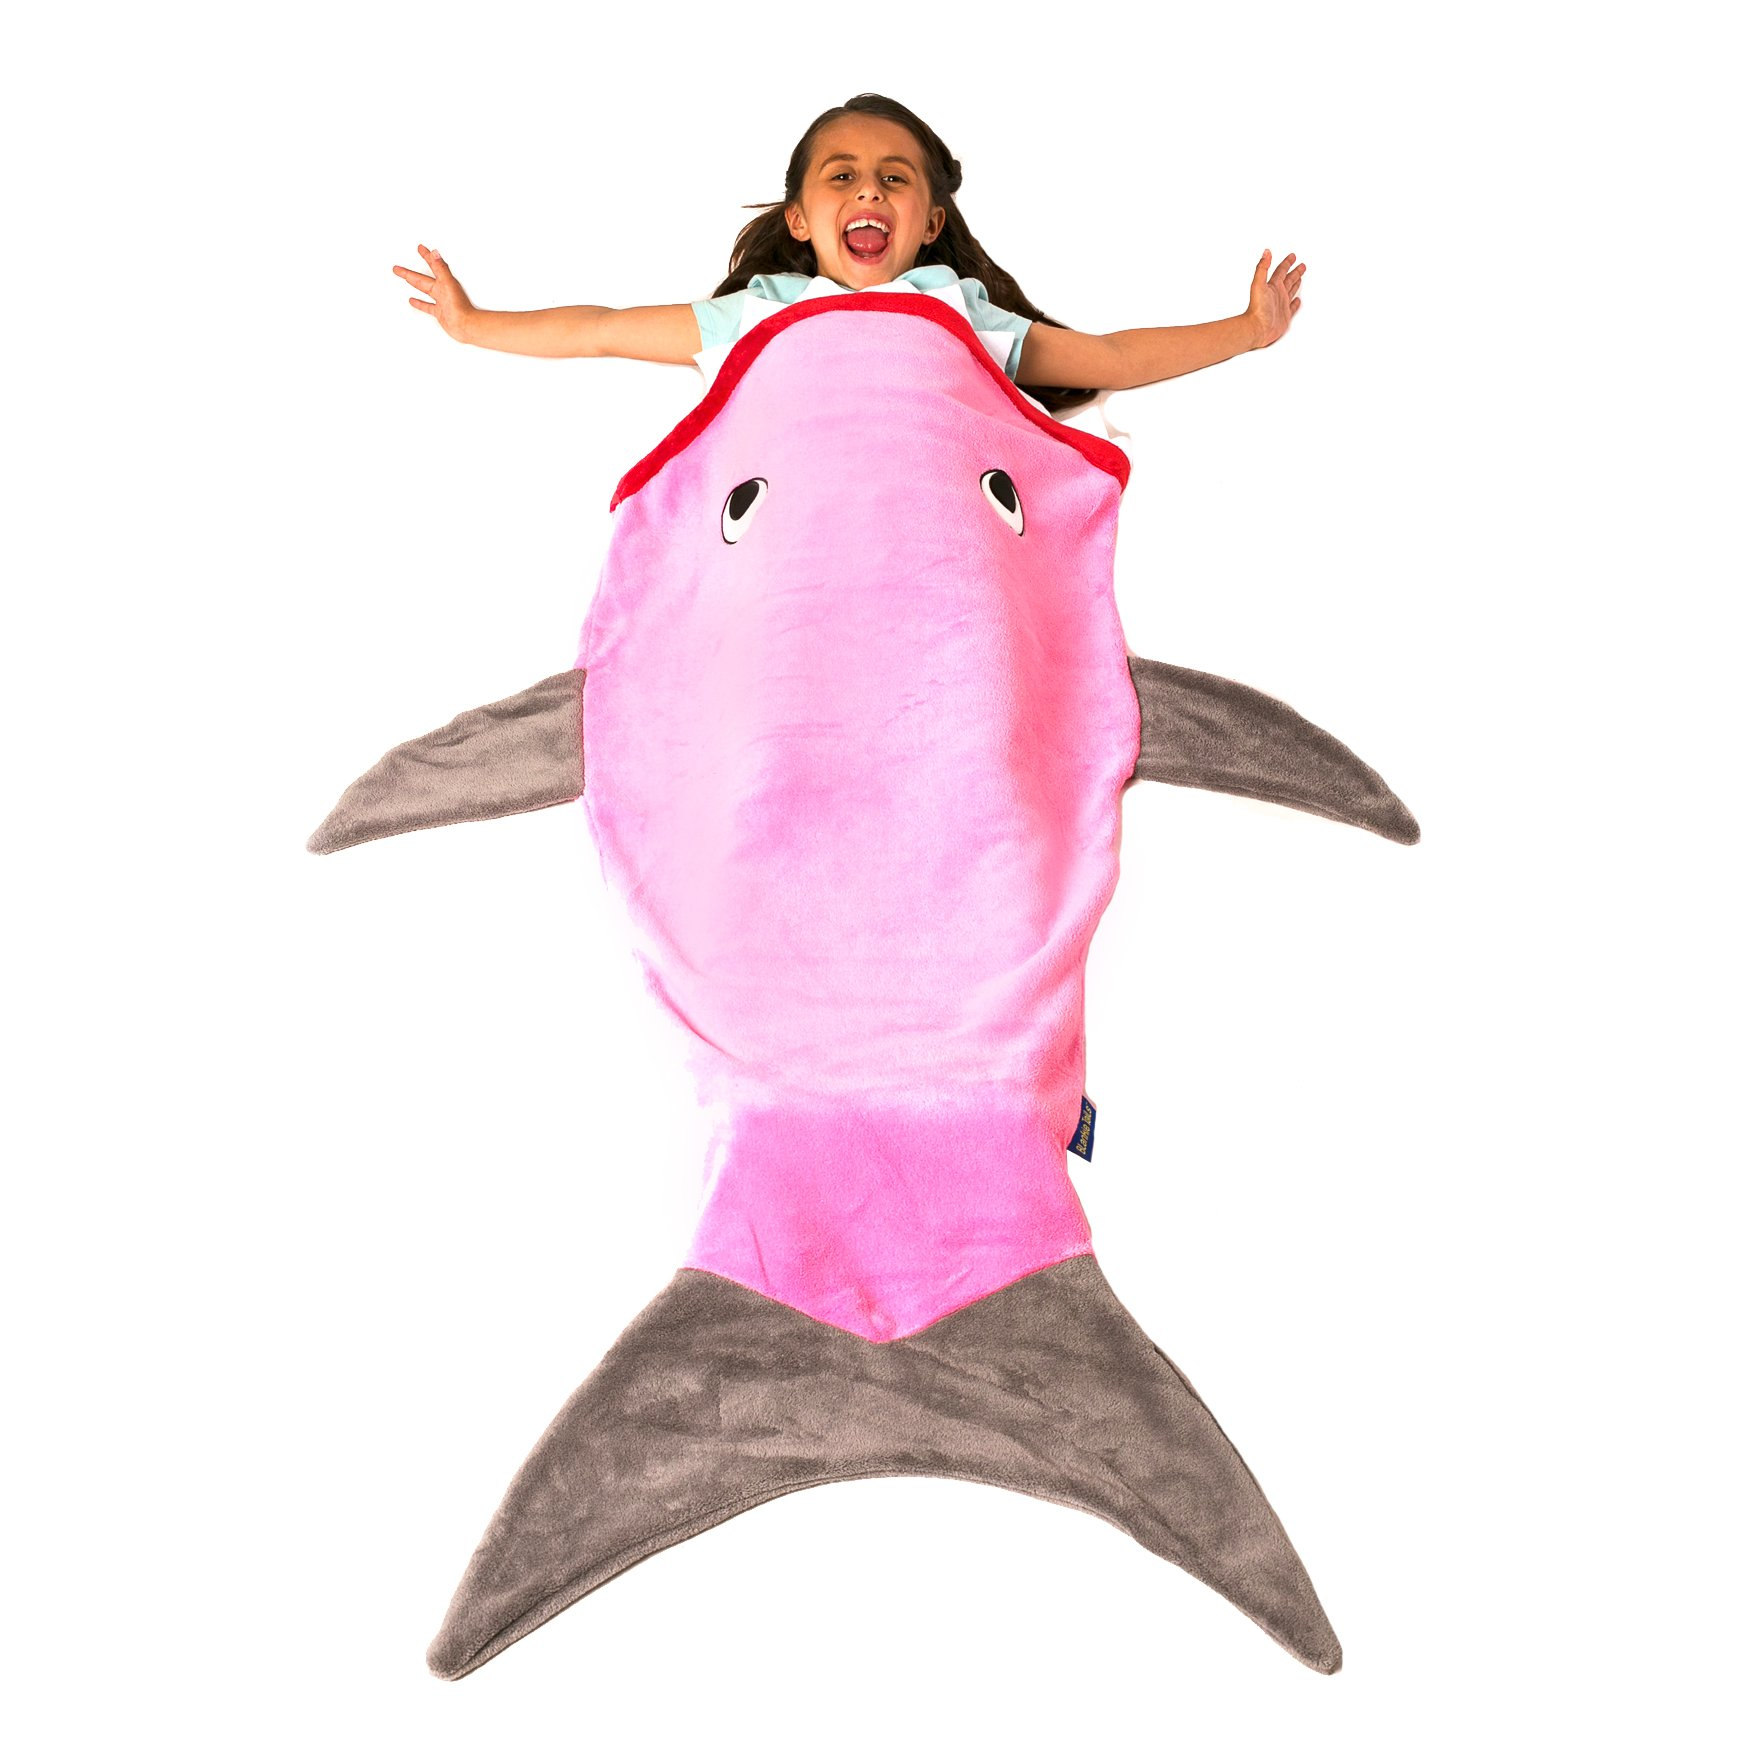 Blankie Tails The Original Shark Blanket for Kids from (Gray and Pink)